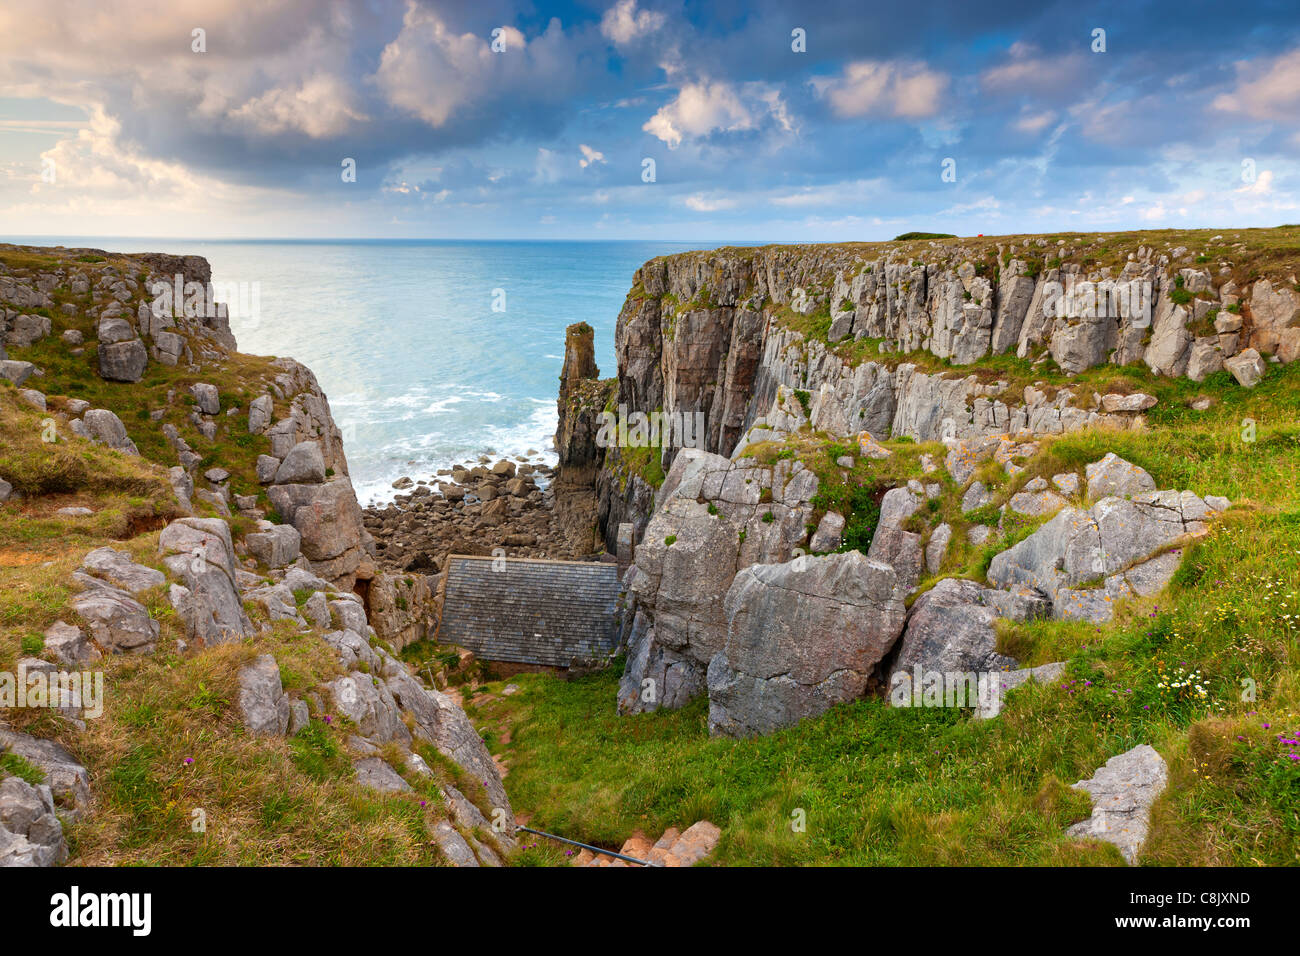 St Govan's Chapel a 13th century Scheduled Ancient Monument in the Pembrokeshire Coast National Park - Stock Image